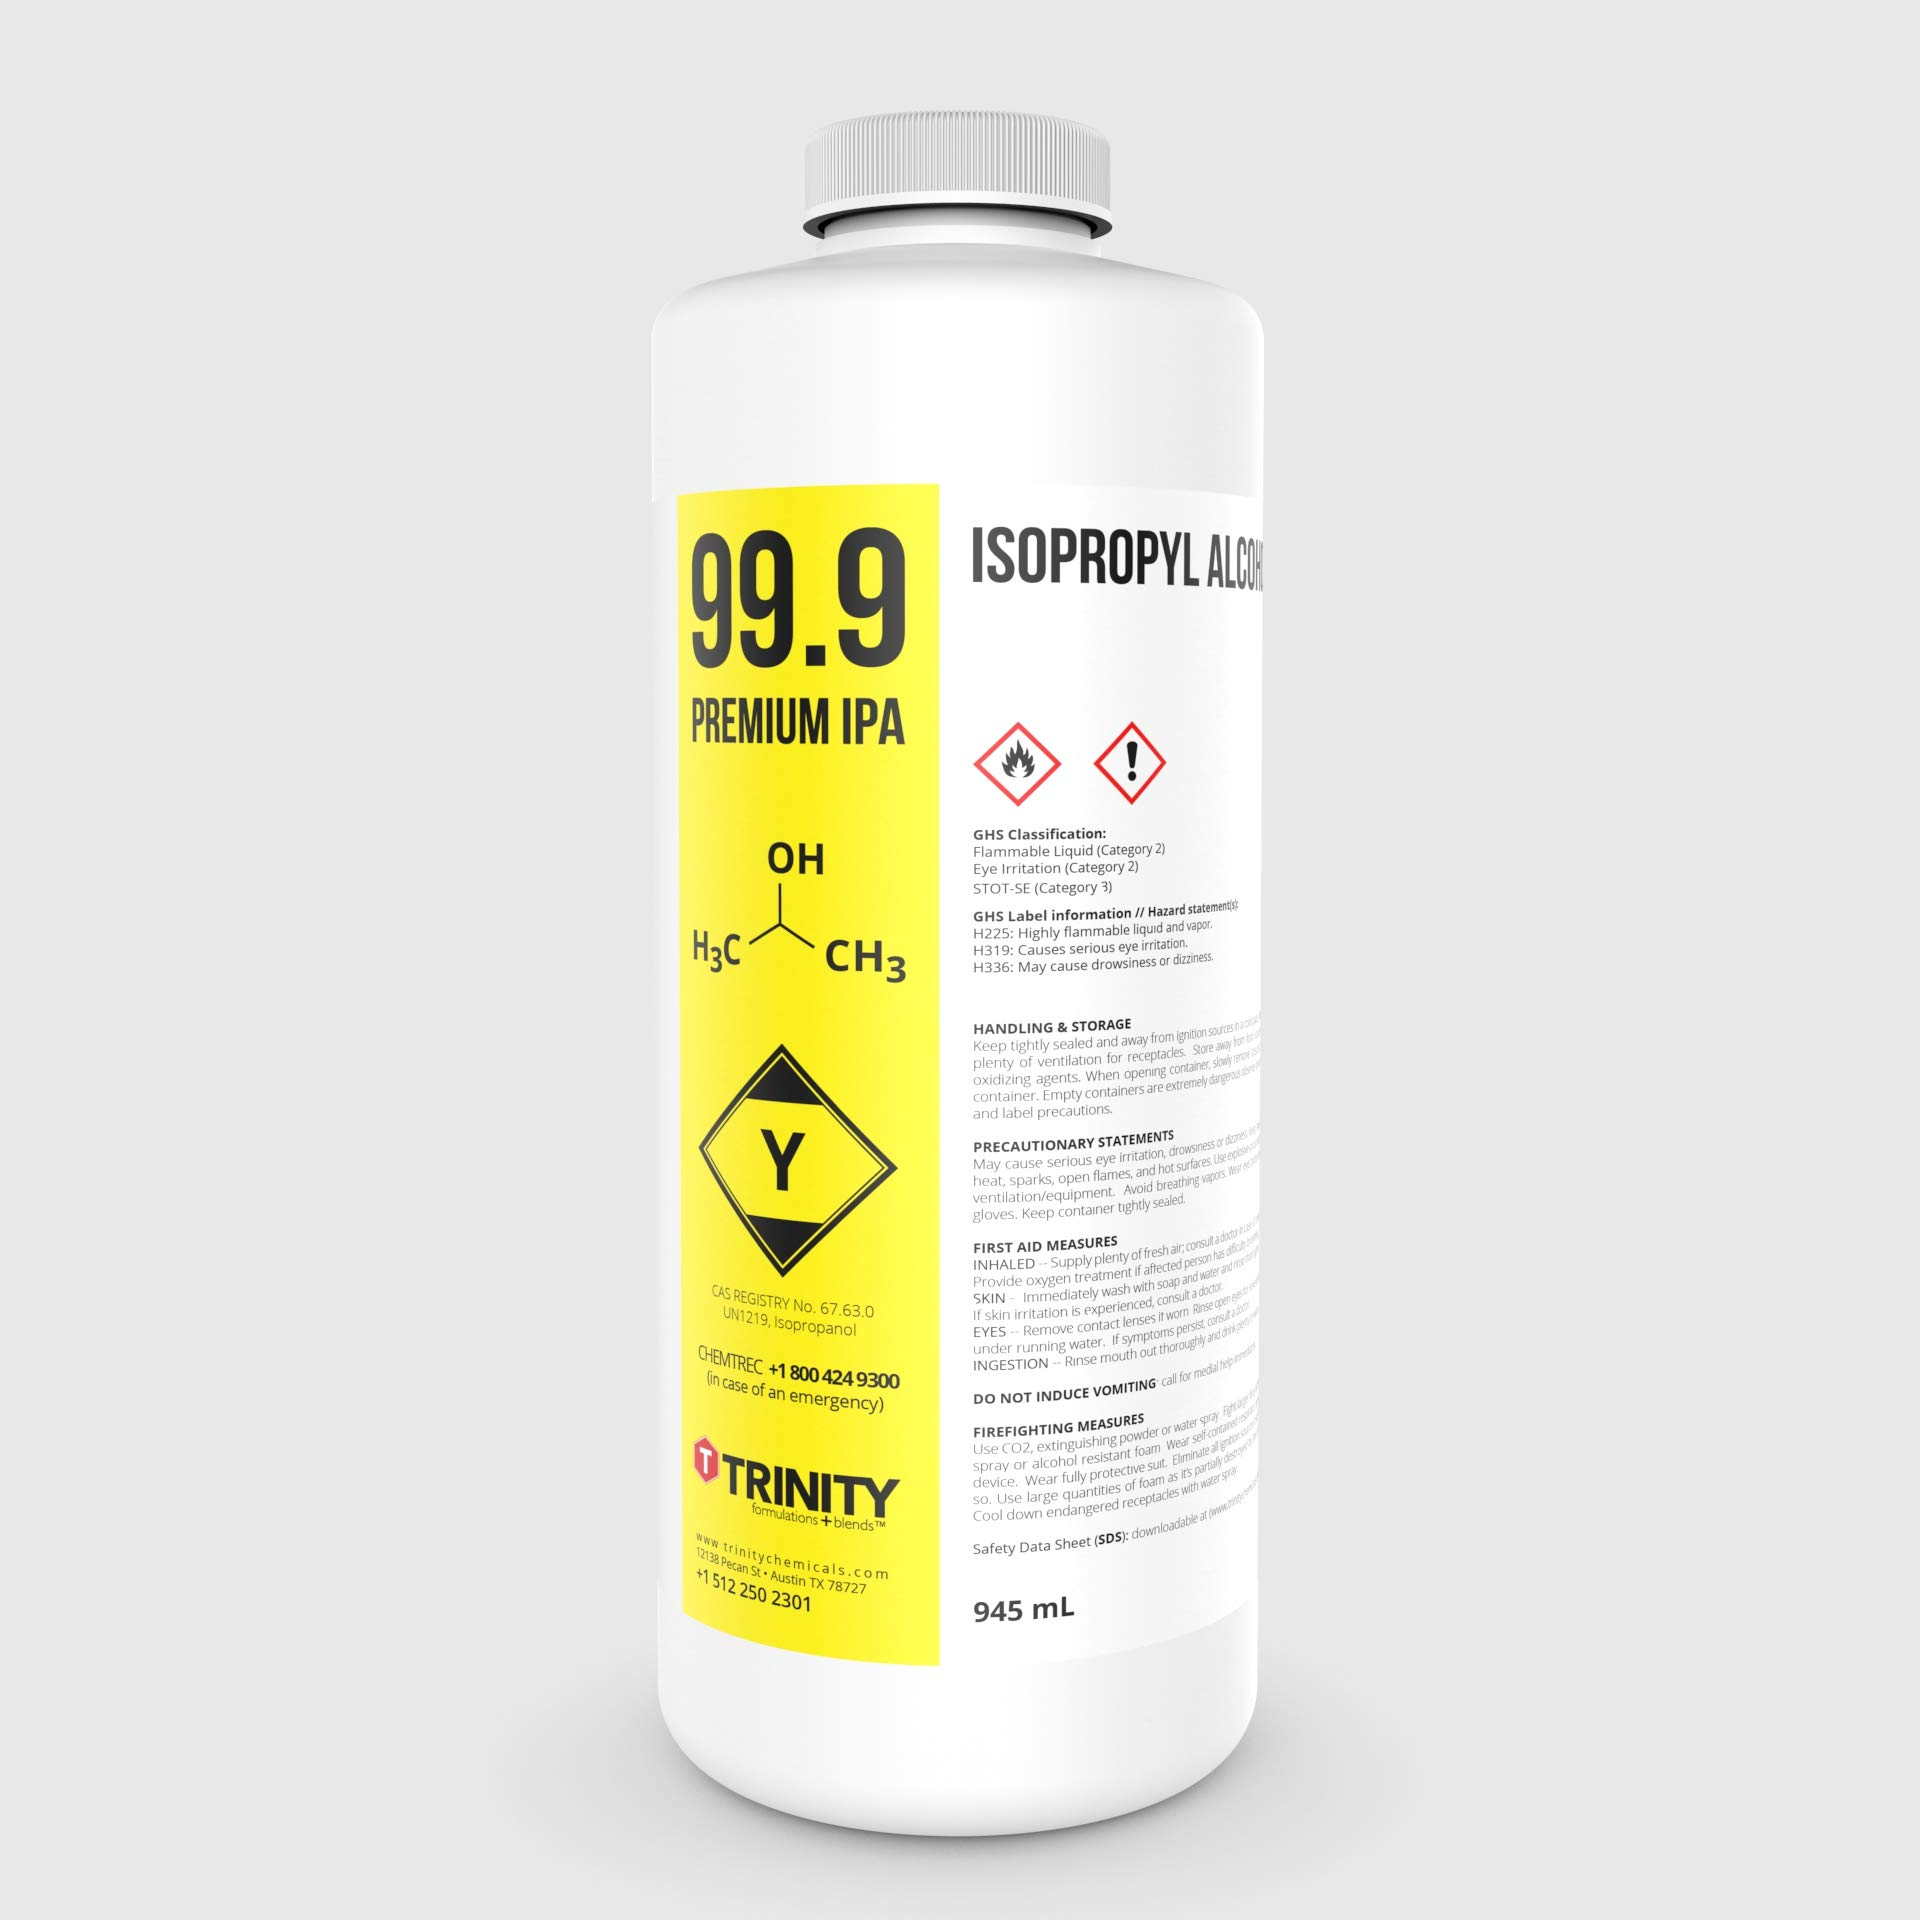 Isopropyl Alcohol 99.9% aka Isopropanol Alcohol 99.9% - A Laboratory-Grade Superior Solvent + Anhydrous USP Liquid Cleaner | 1 Quart (945 mL) by PREMIUM IPA